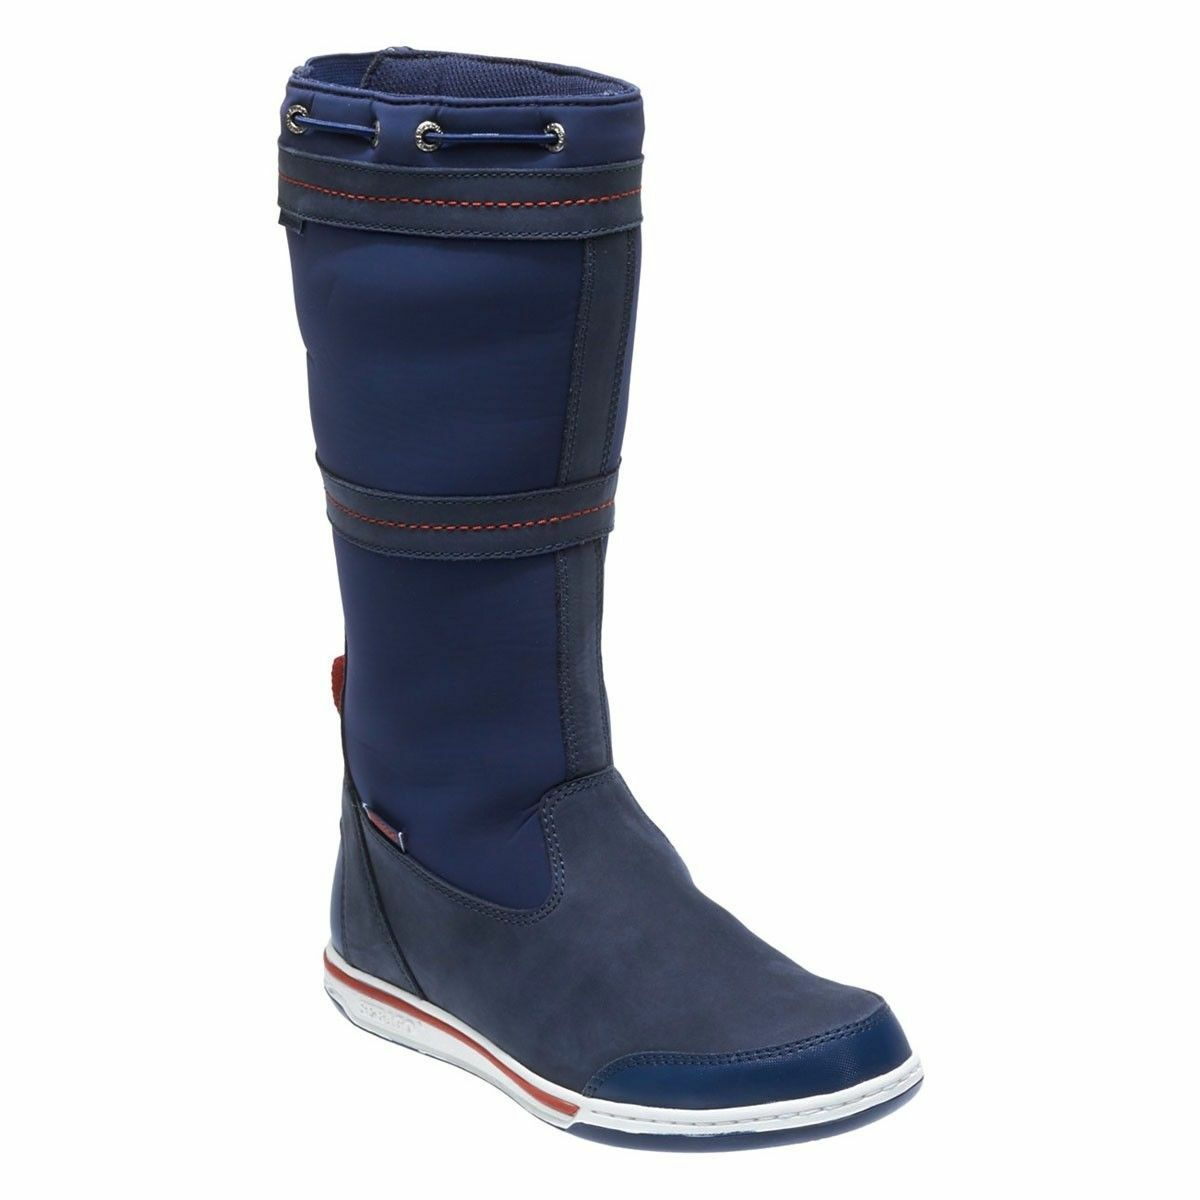 Mens Sebago Triton Waterproof Sailing Yacht Boating Pull On Stiefel Größes 7 to 11